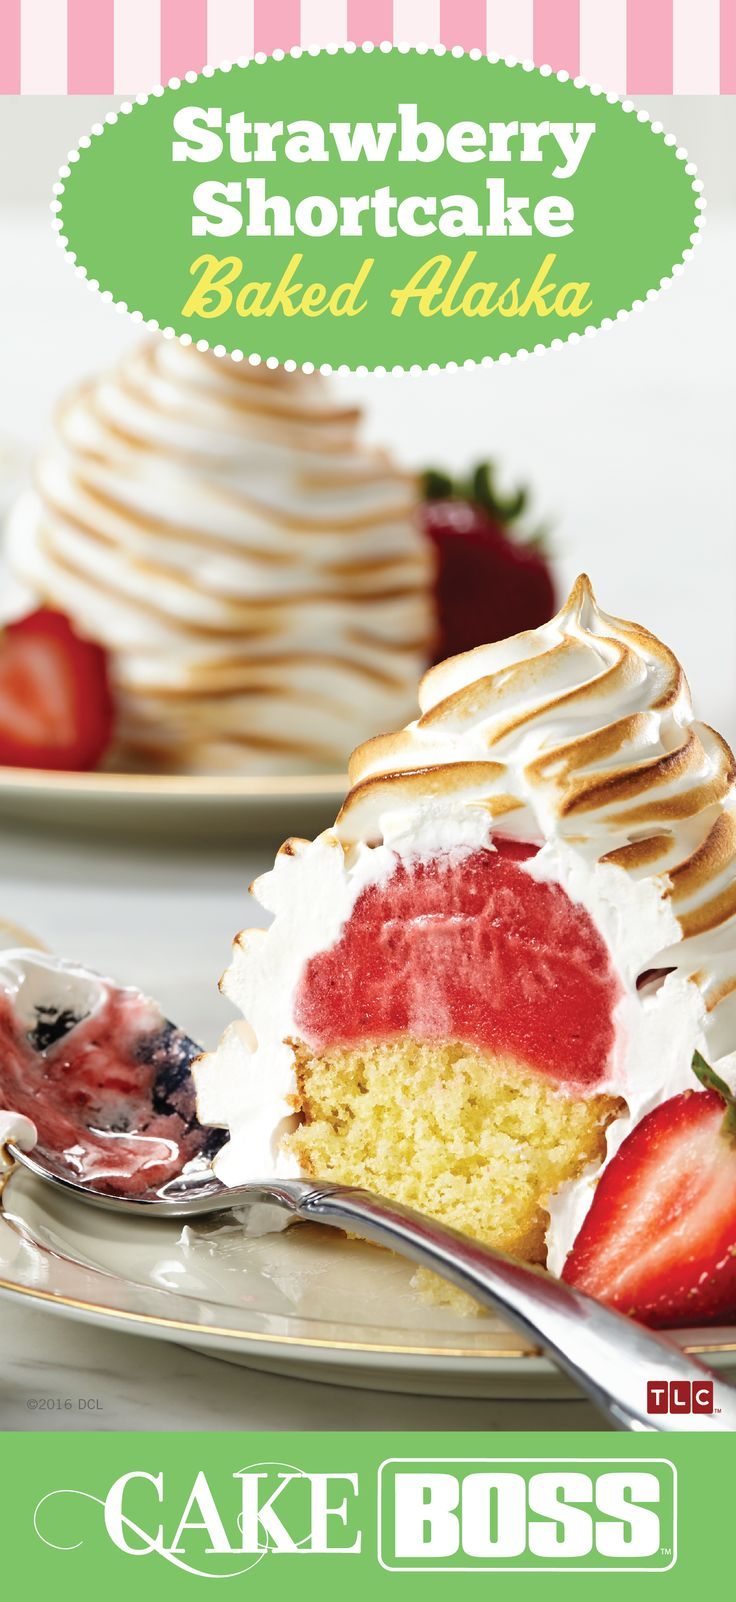 Buttery pound cake topped with sweet frozen strawberry sorbet and fluffy, brûléed meringue. Click on the image for our Strawberry Shortcake Baked Alaska recipe.